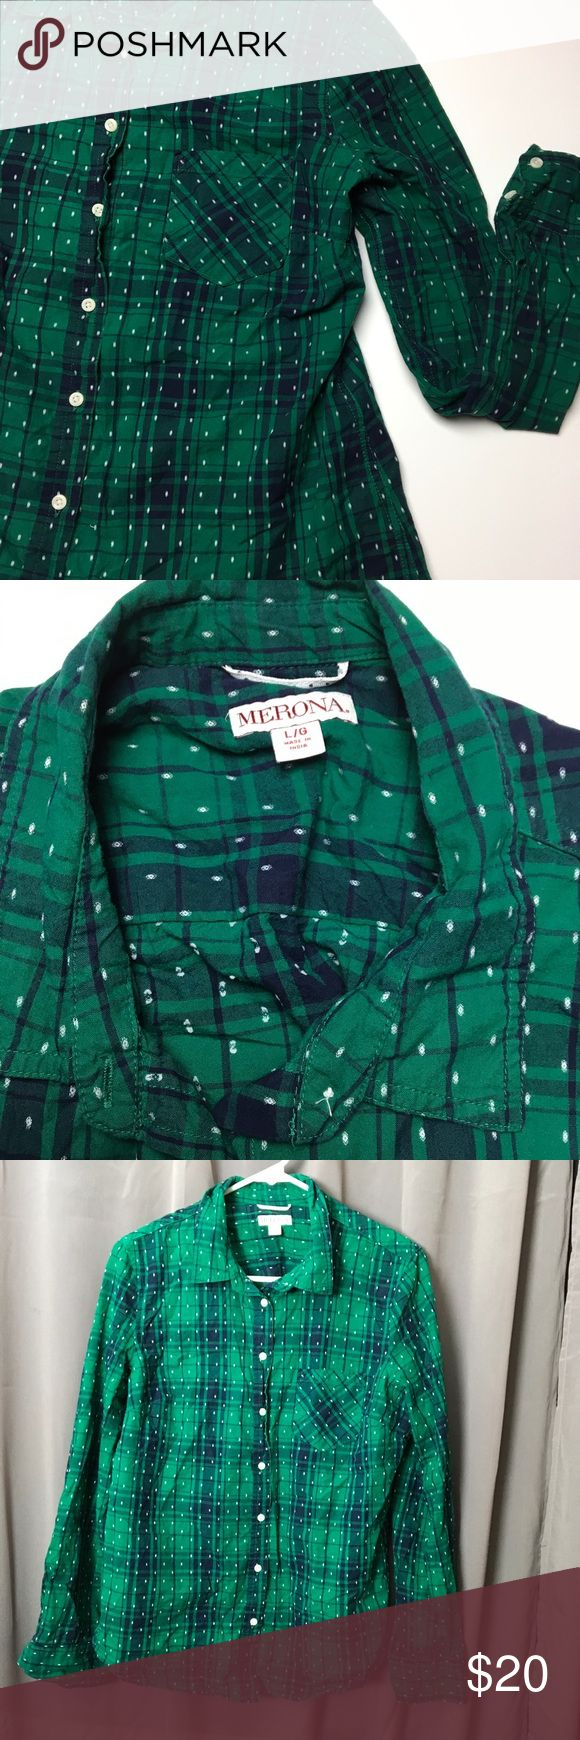 Green Plaid Button Down Shirt 🐢 In great condition. I'll steam it before packaging. Really cute and flattering. Bundle for a discount. 😍 Merona Tops Button Down Shirts